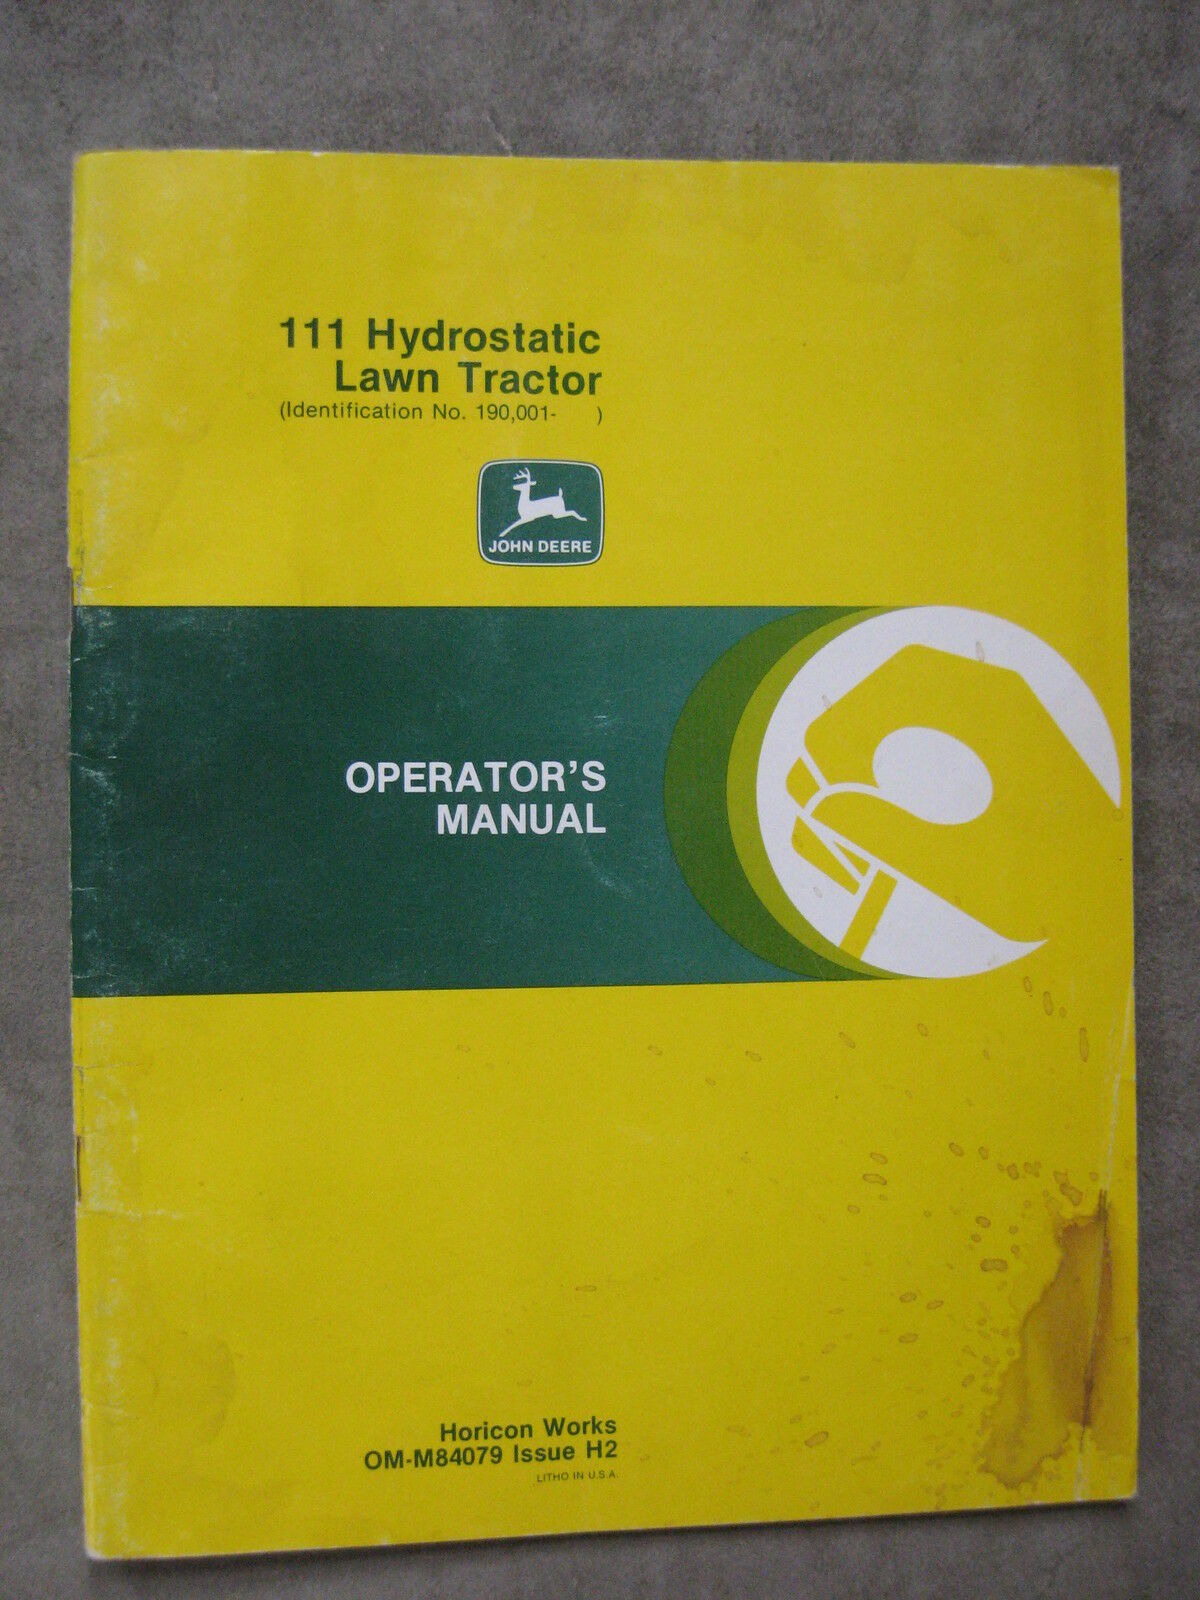 John Deere 111 HydrostaticLawn Tractor Operators manual 190,001 up 1 of  1Only 1 available ...